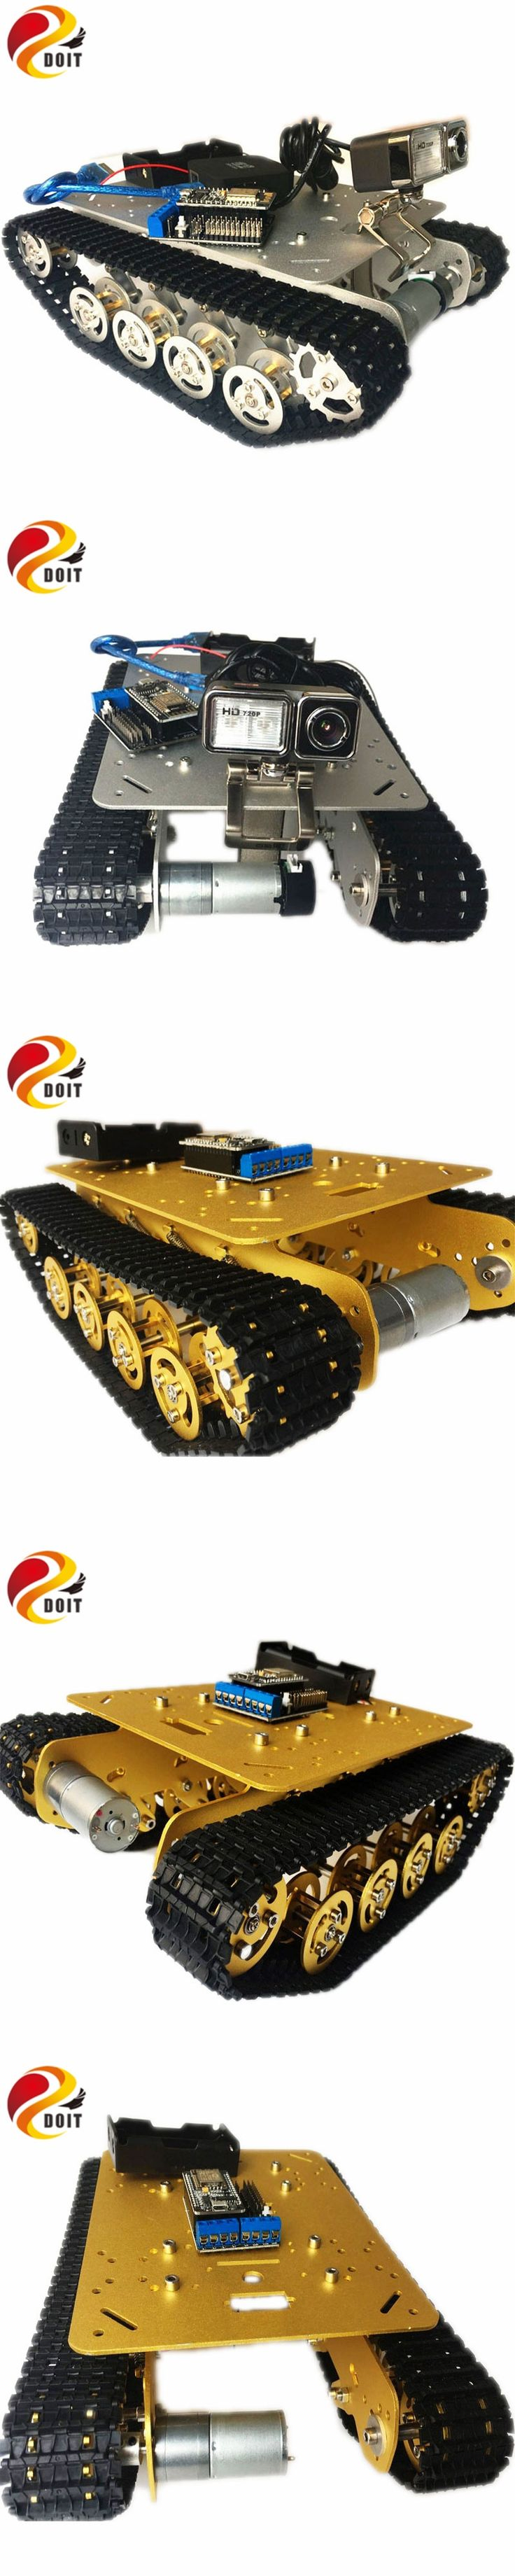 DOIT TS100 RC WiFi Robot Tank Car Chassis Controlled by Android/iOS Phone based on Nodemcu ESP8266 Development Kit with Video